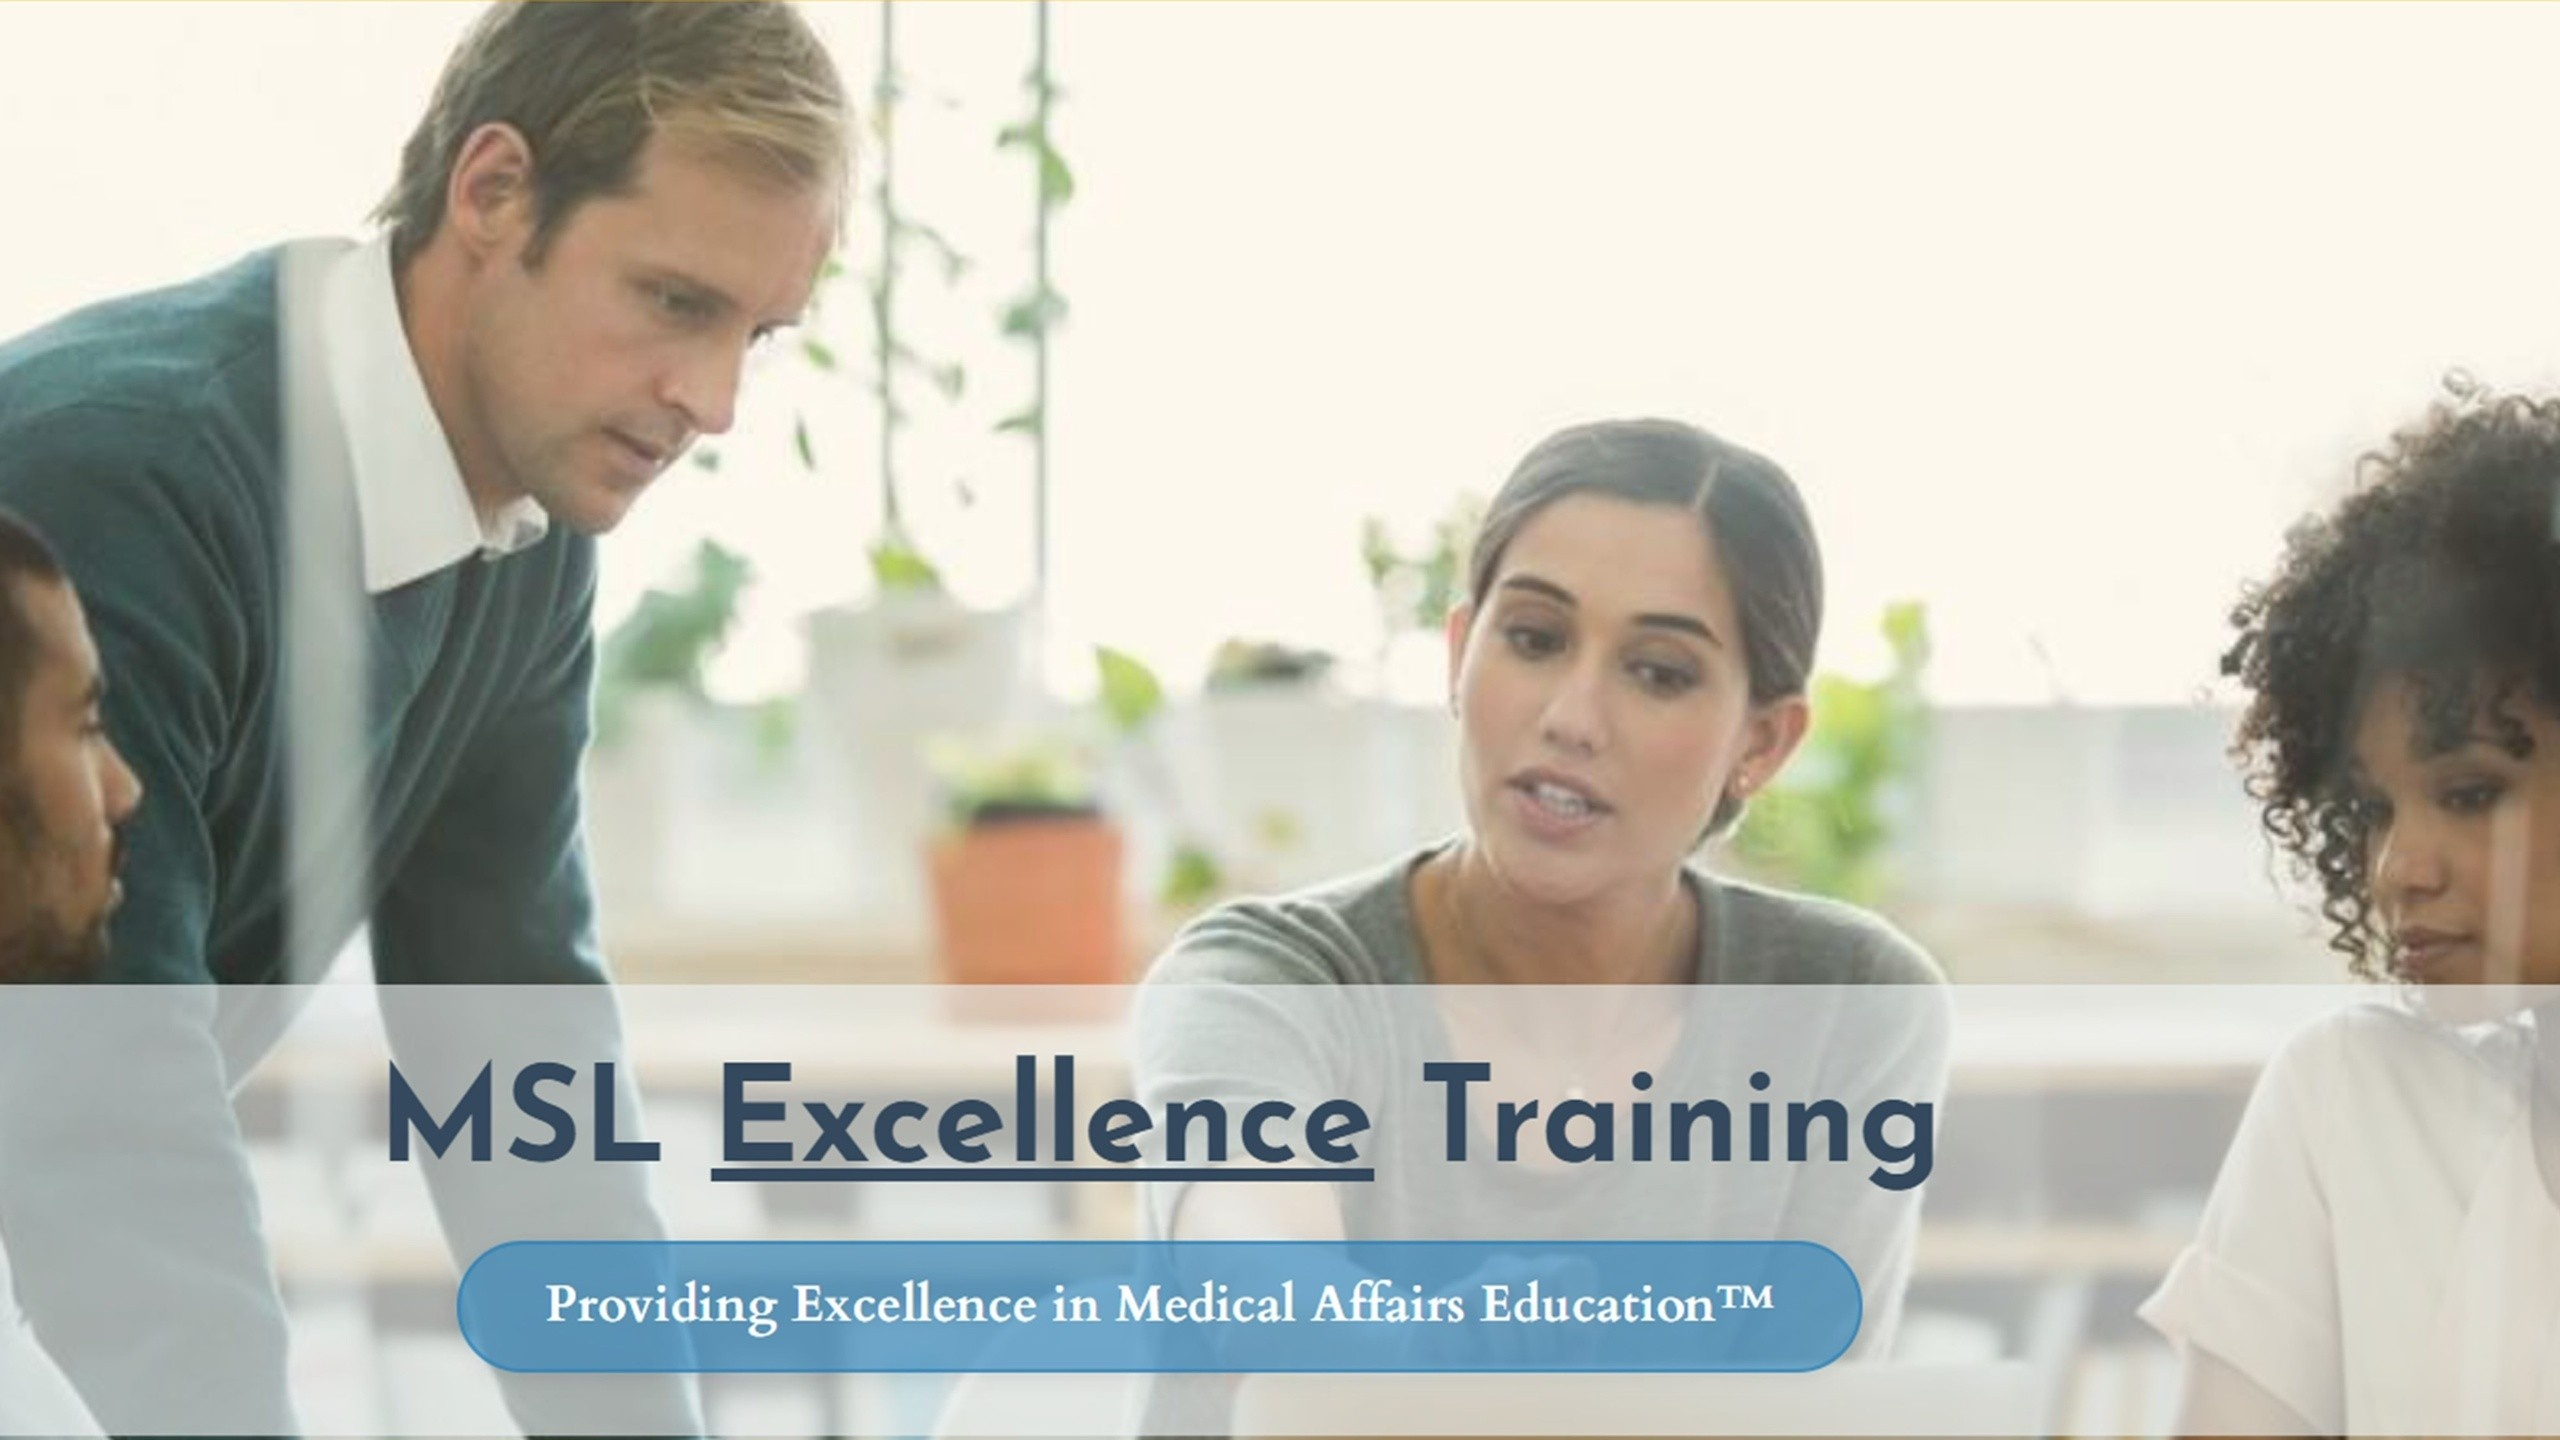 MSL excellence training - from SCIENCE to PHARMA